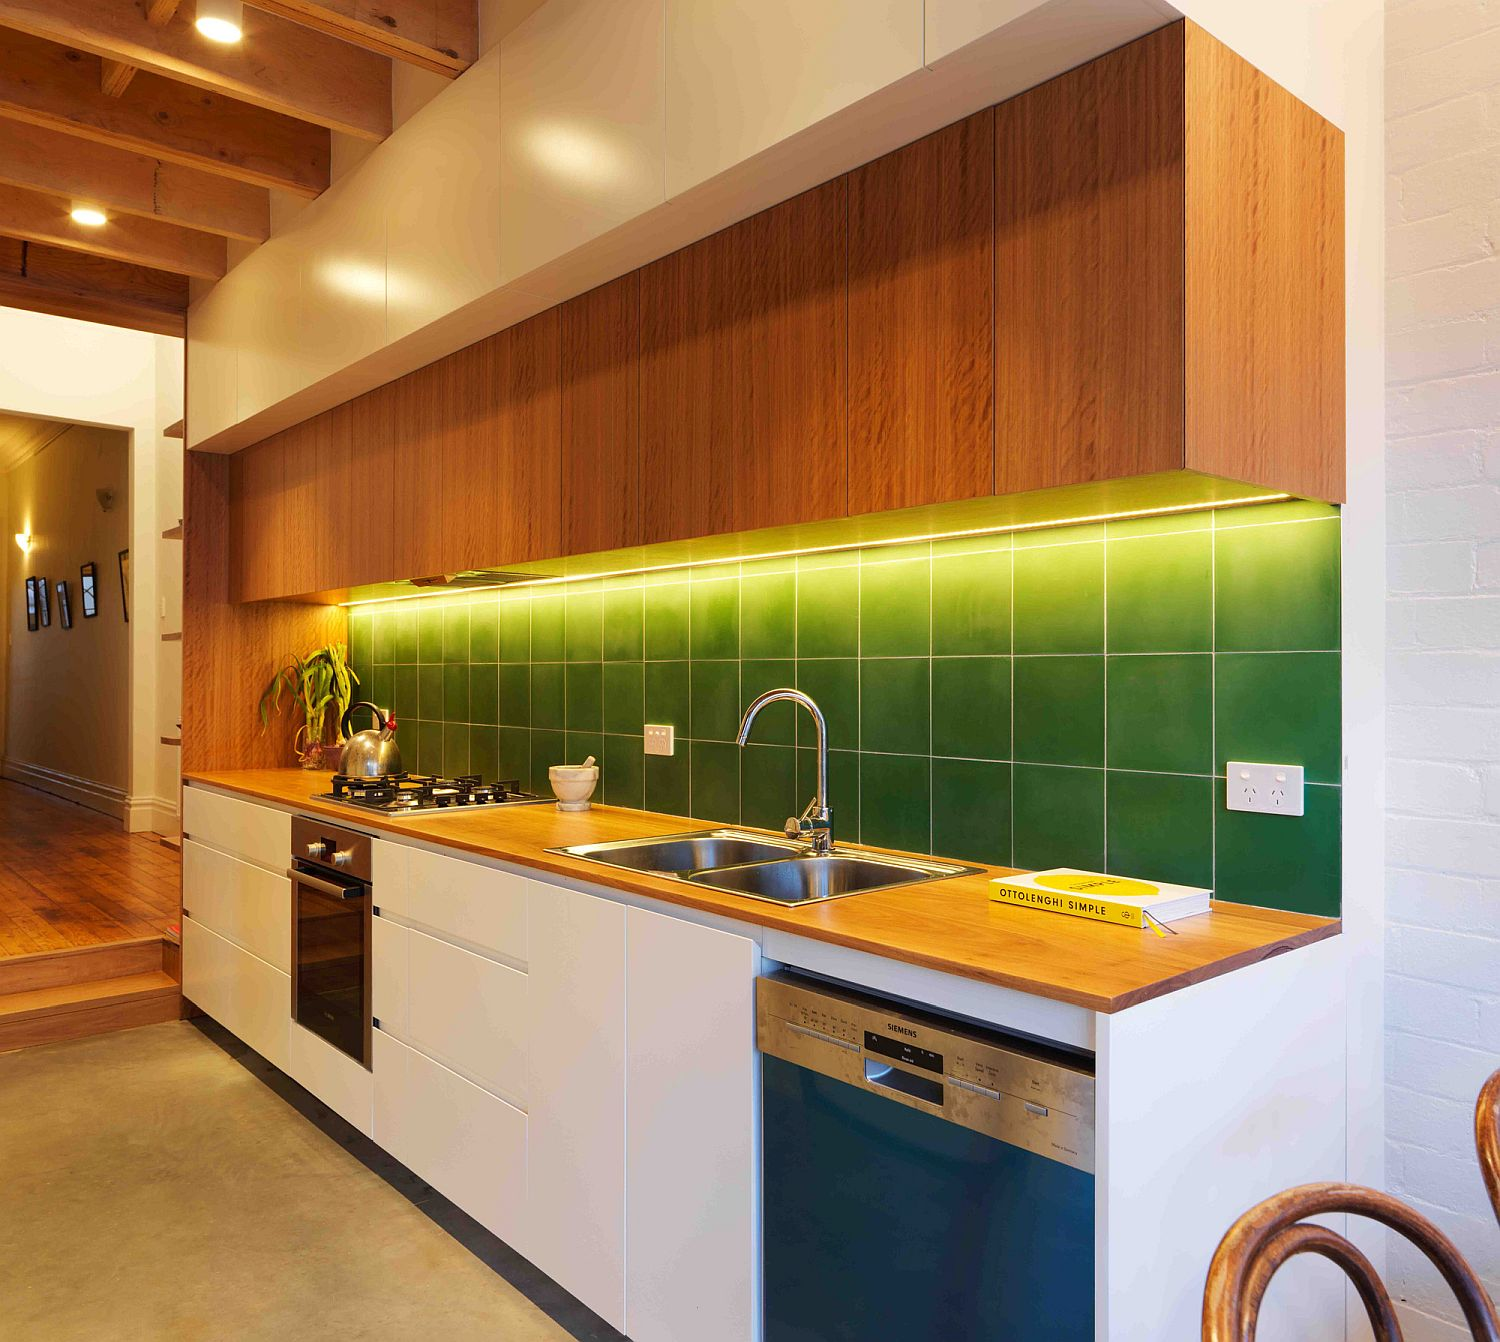 Gorgeous green backsplash for the kitchen in white and wood